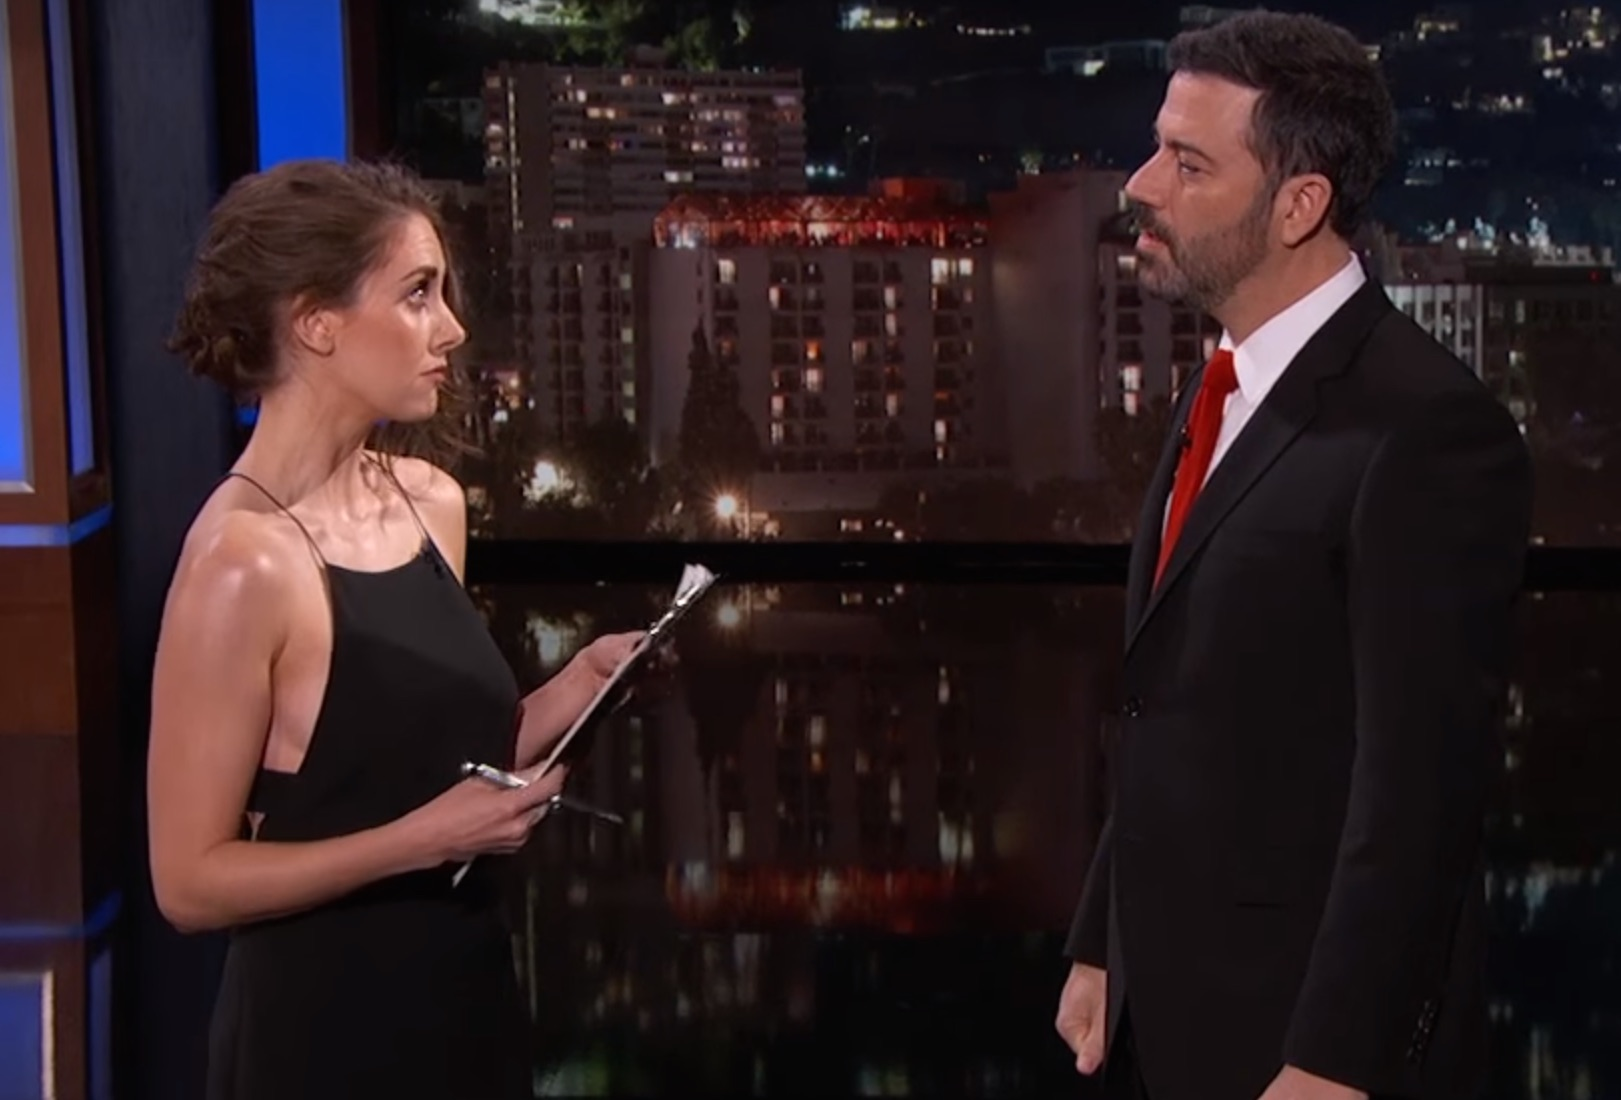 Alison Brie desperately tried to sell Jimmy Kimmel some Girl Scout Cookies